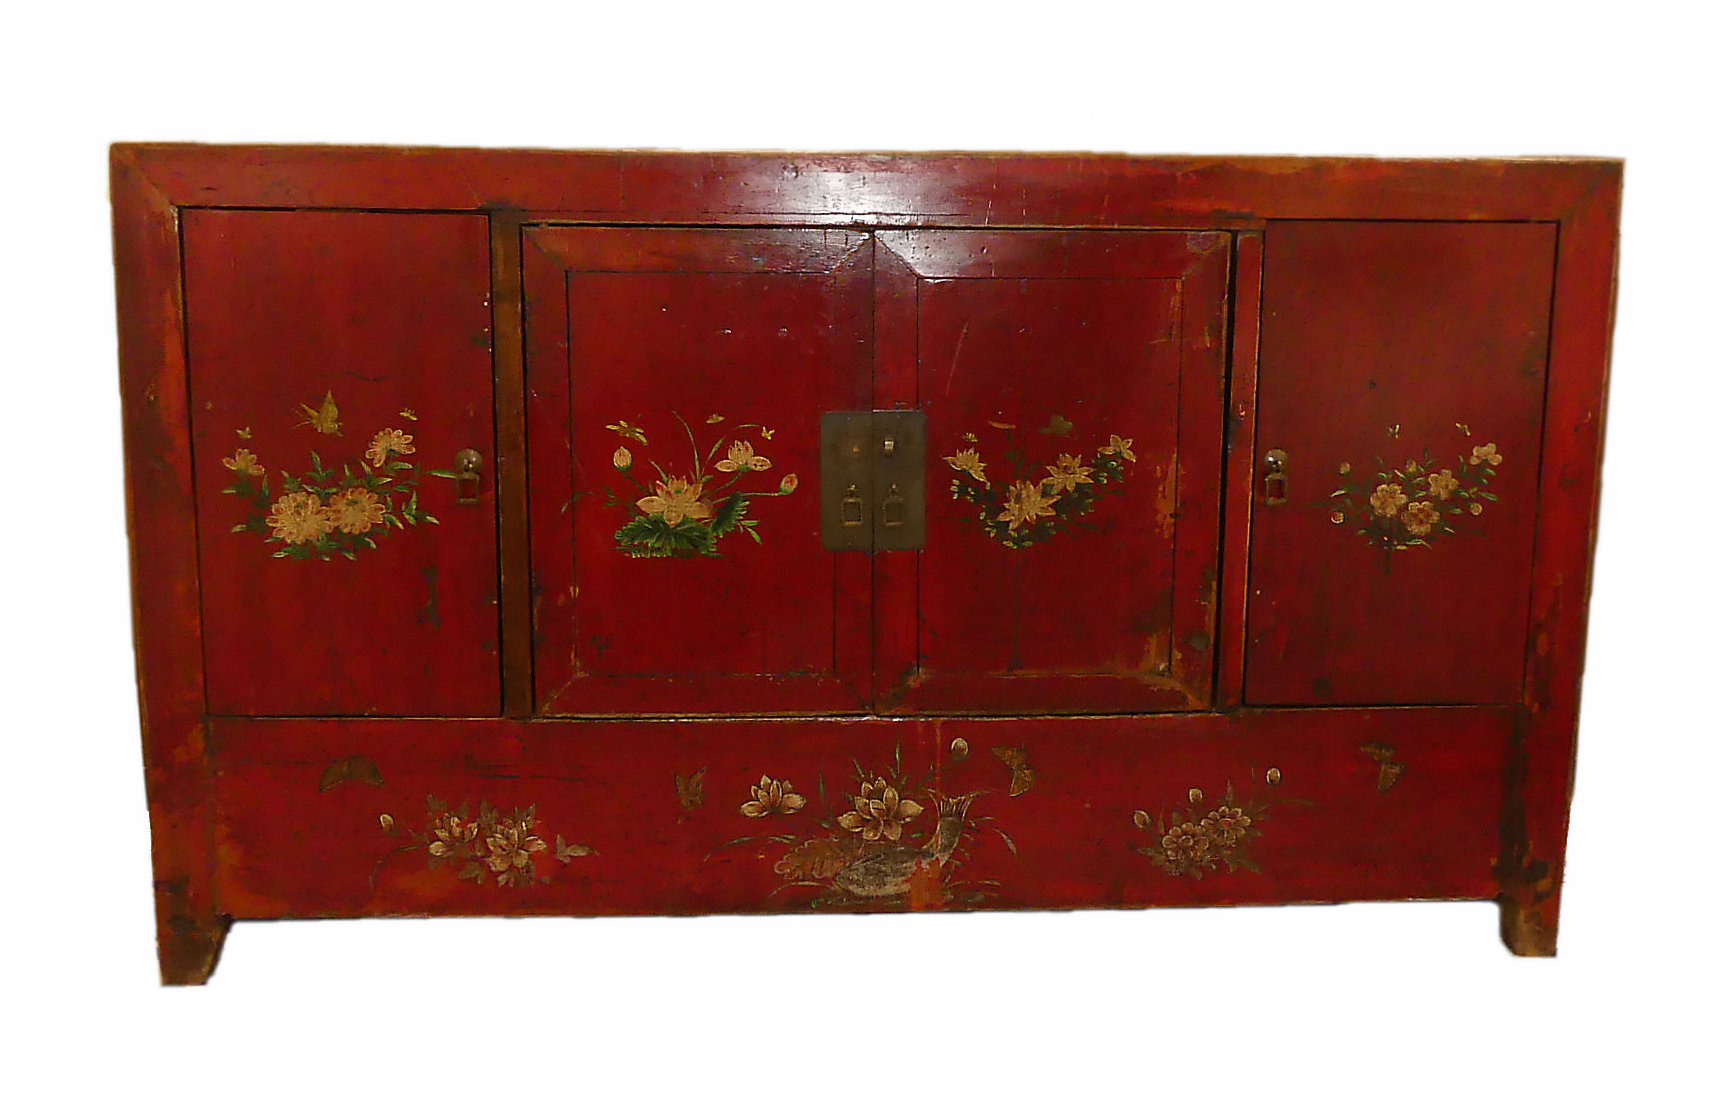 SOLD Rustic Hand Painted Mongolian Credenza or Cabinet